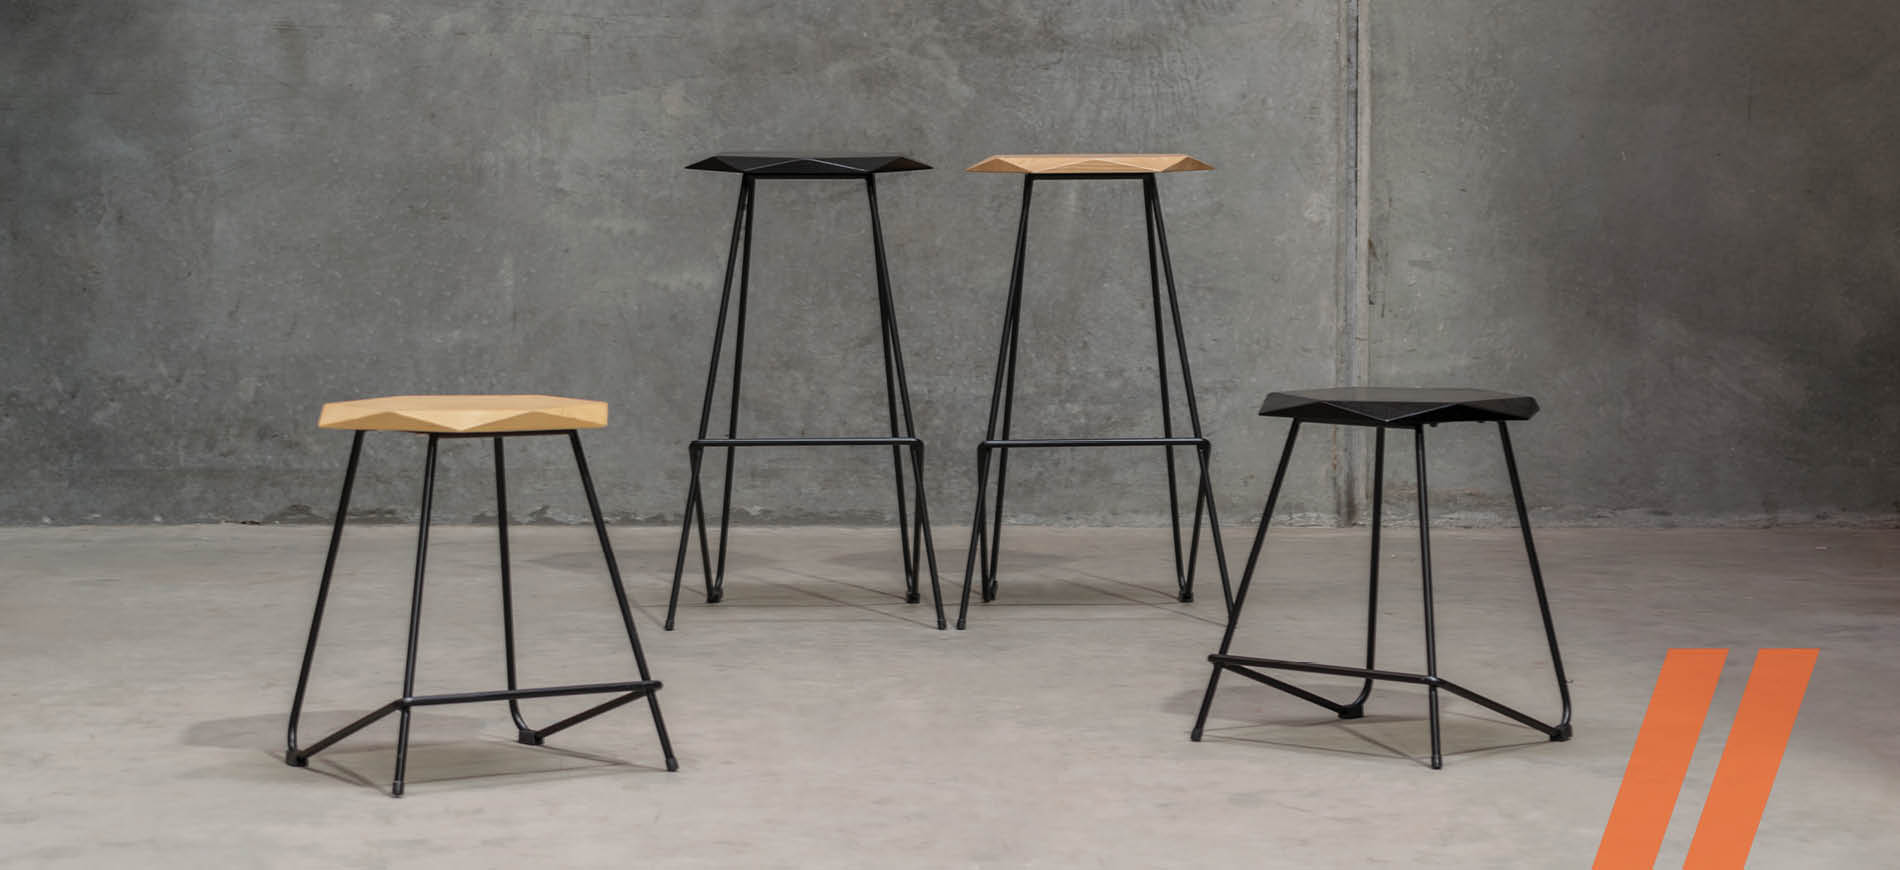 Weston Bar Stools and Low Stools